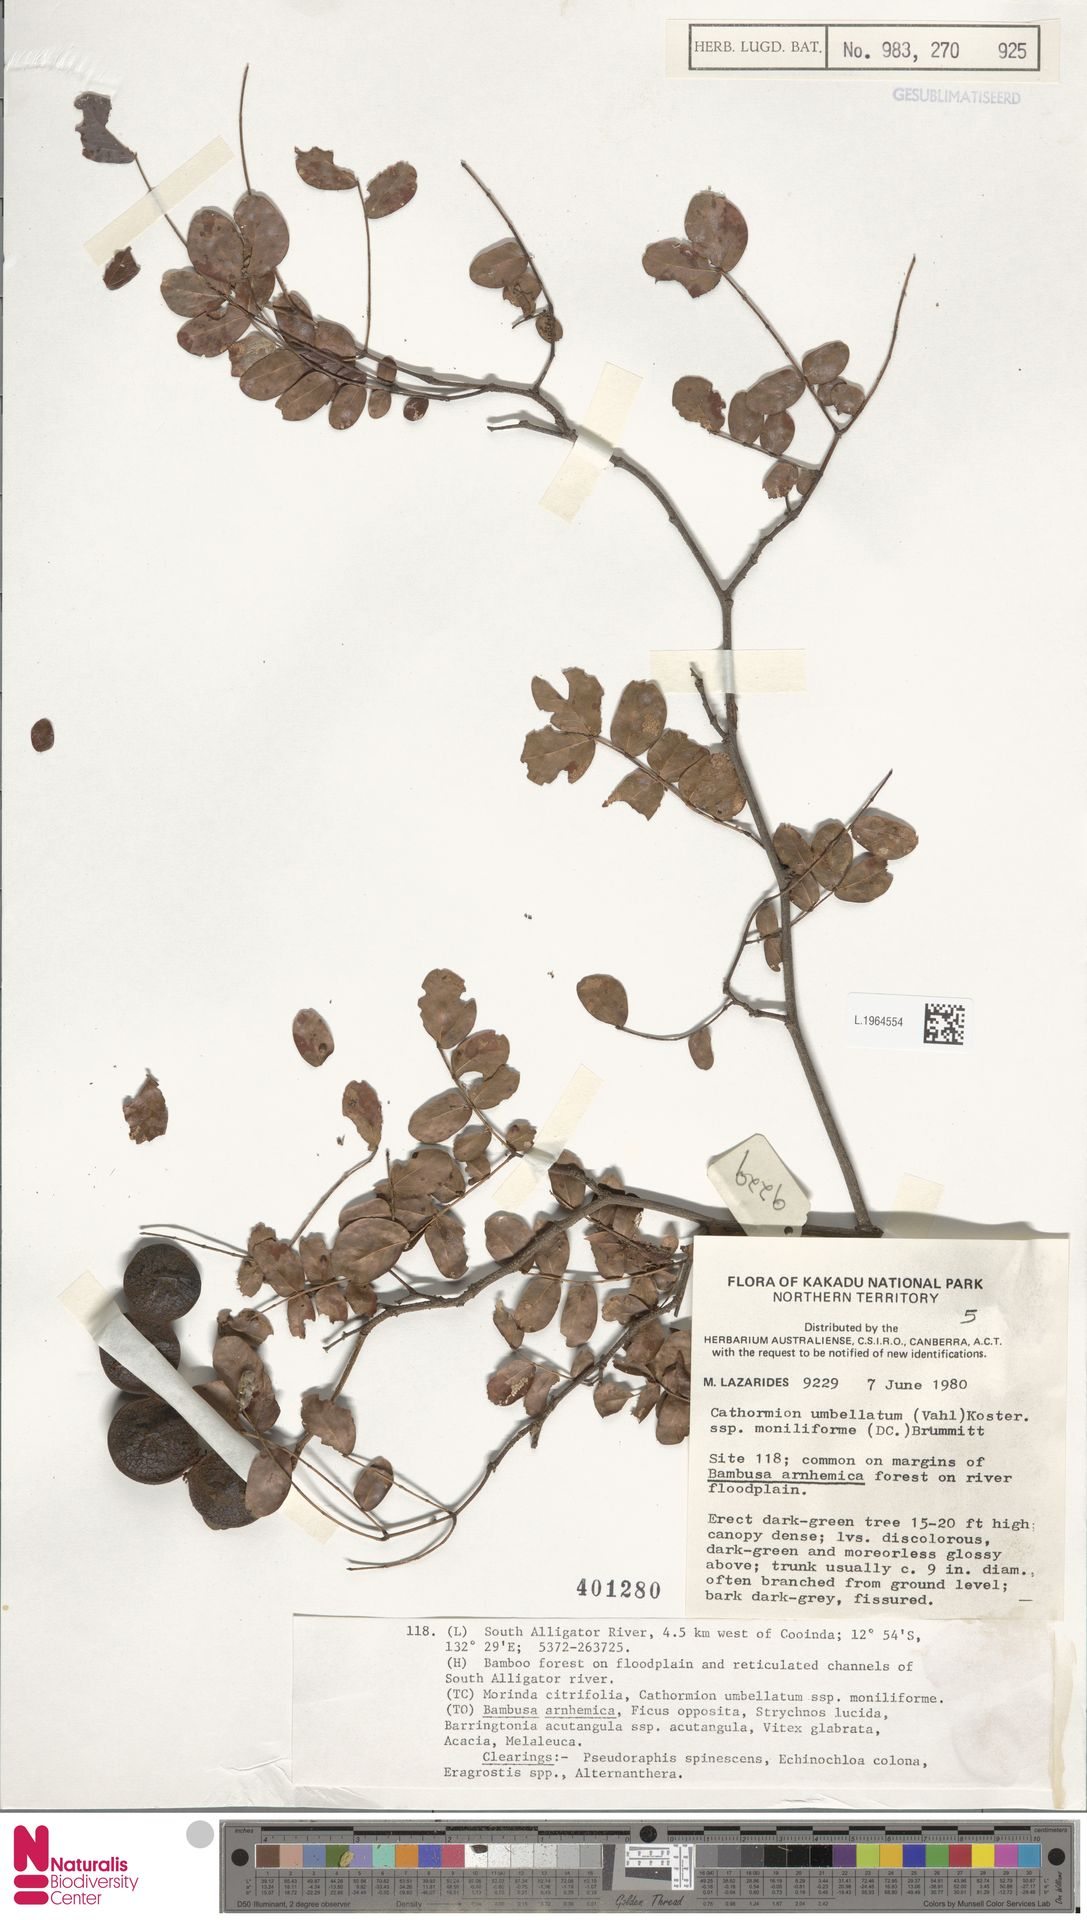 L.1964554 | Cathormion umbellatum subsp. moniliforme (DC.) Brummitt